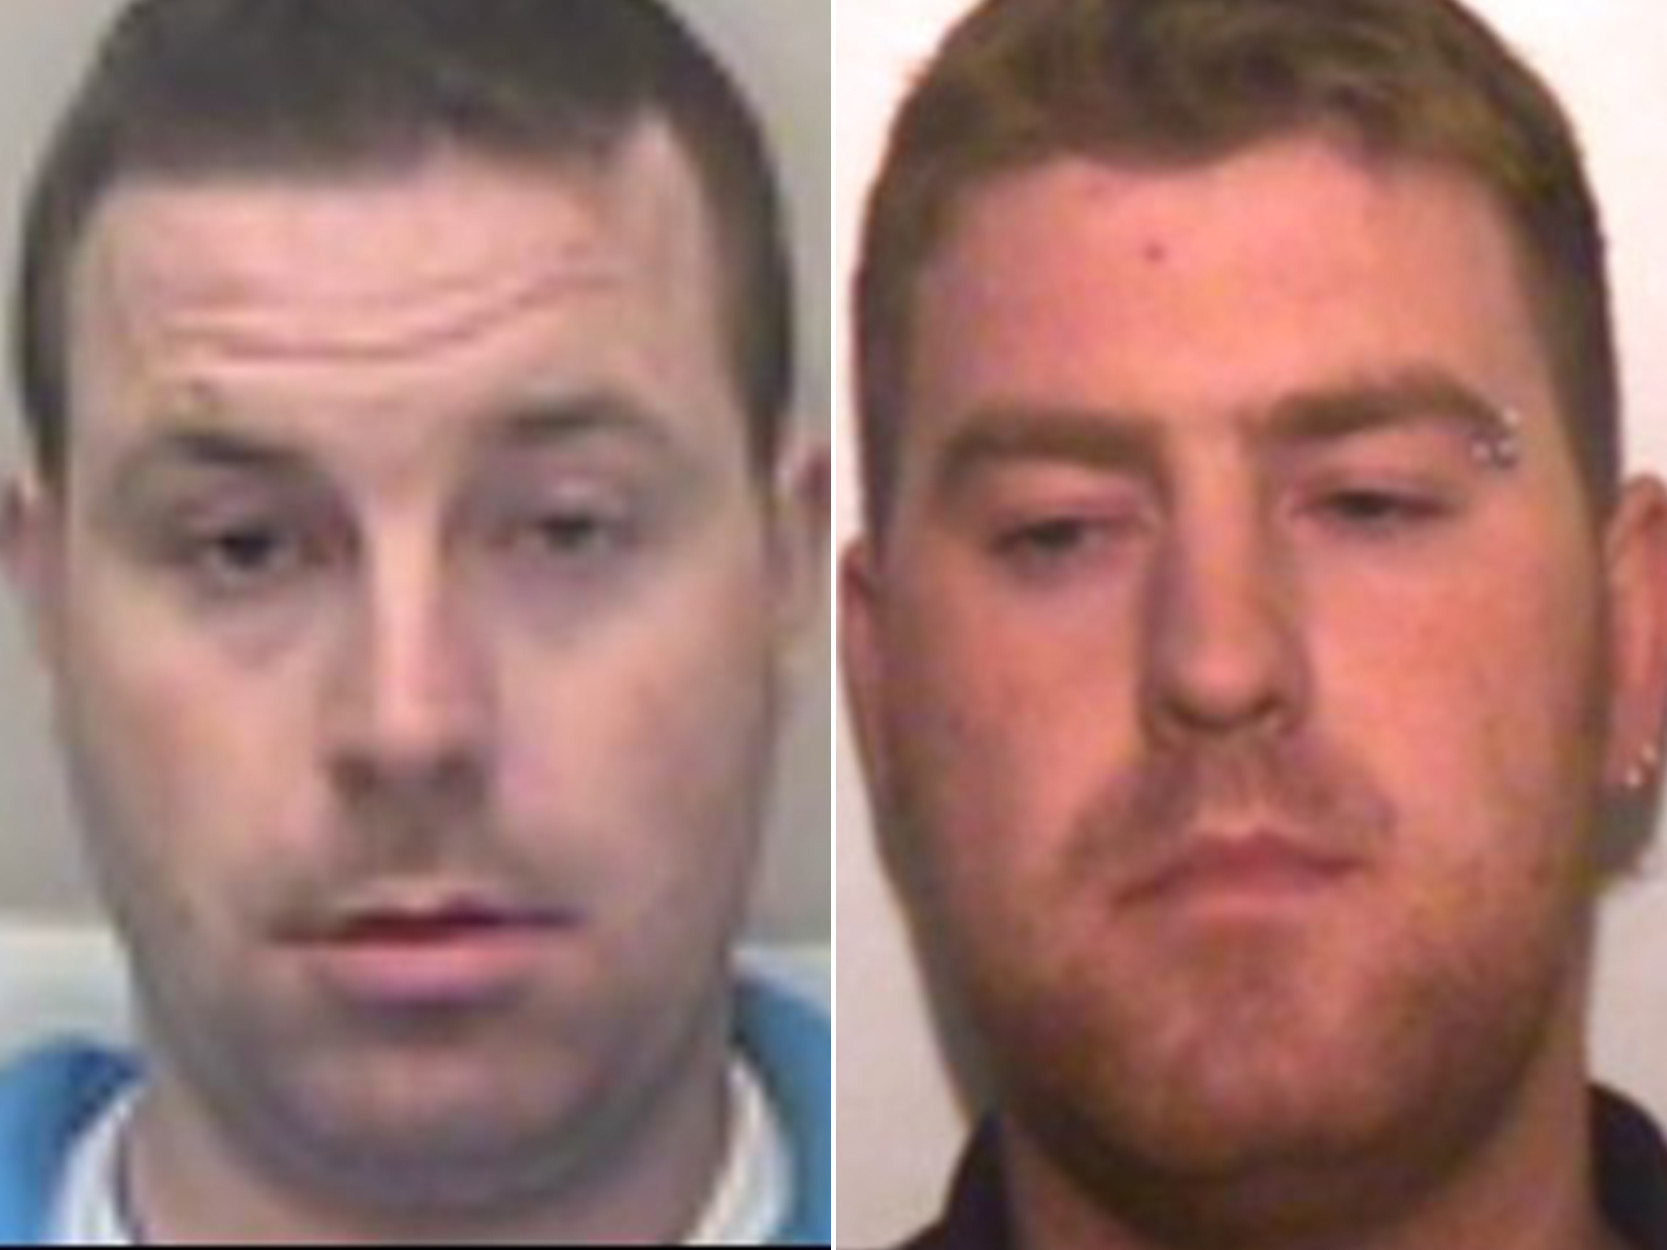 Irish brothers wanted in connection with the deaths of 39 people found dead in refrigerated trailer